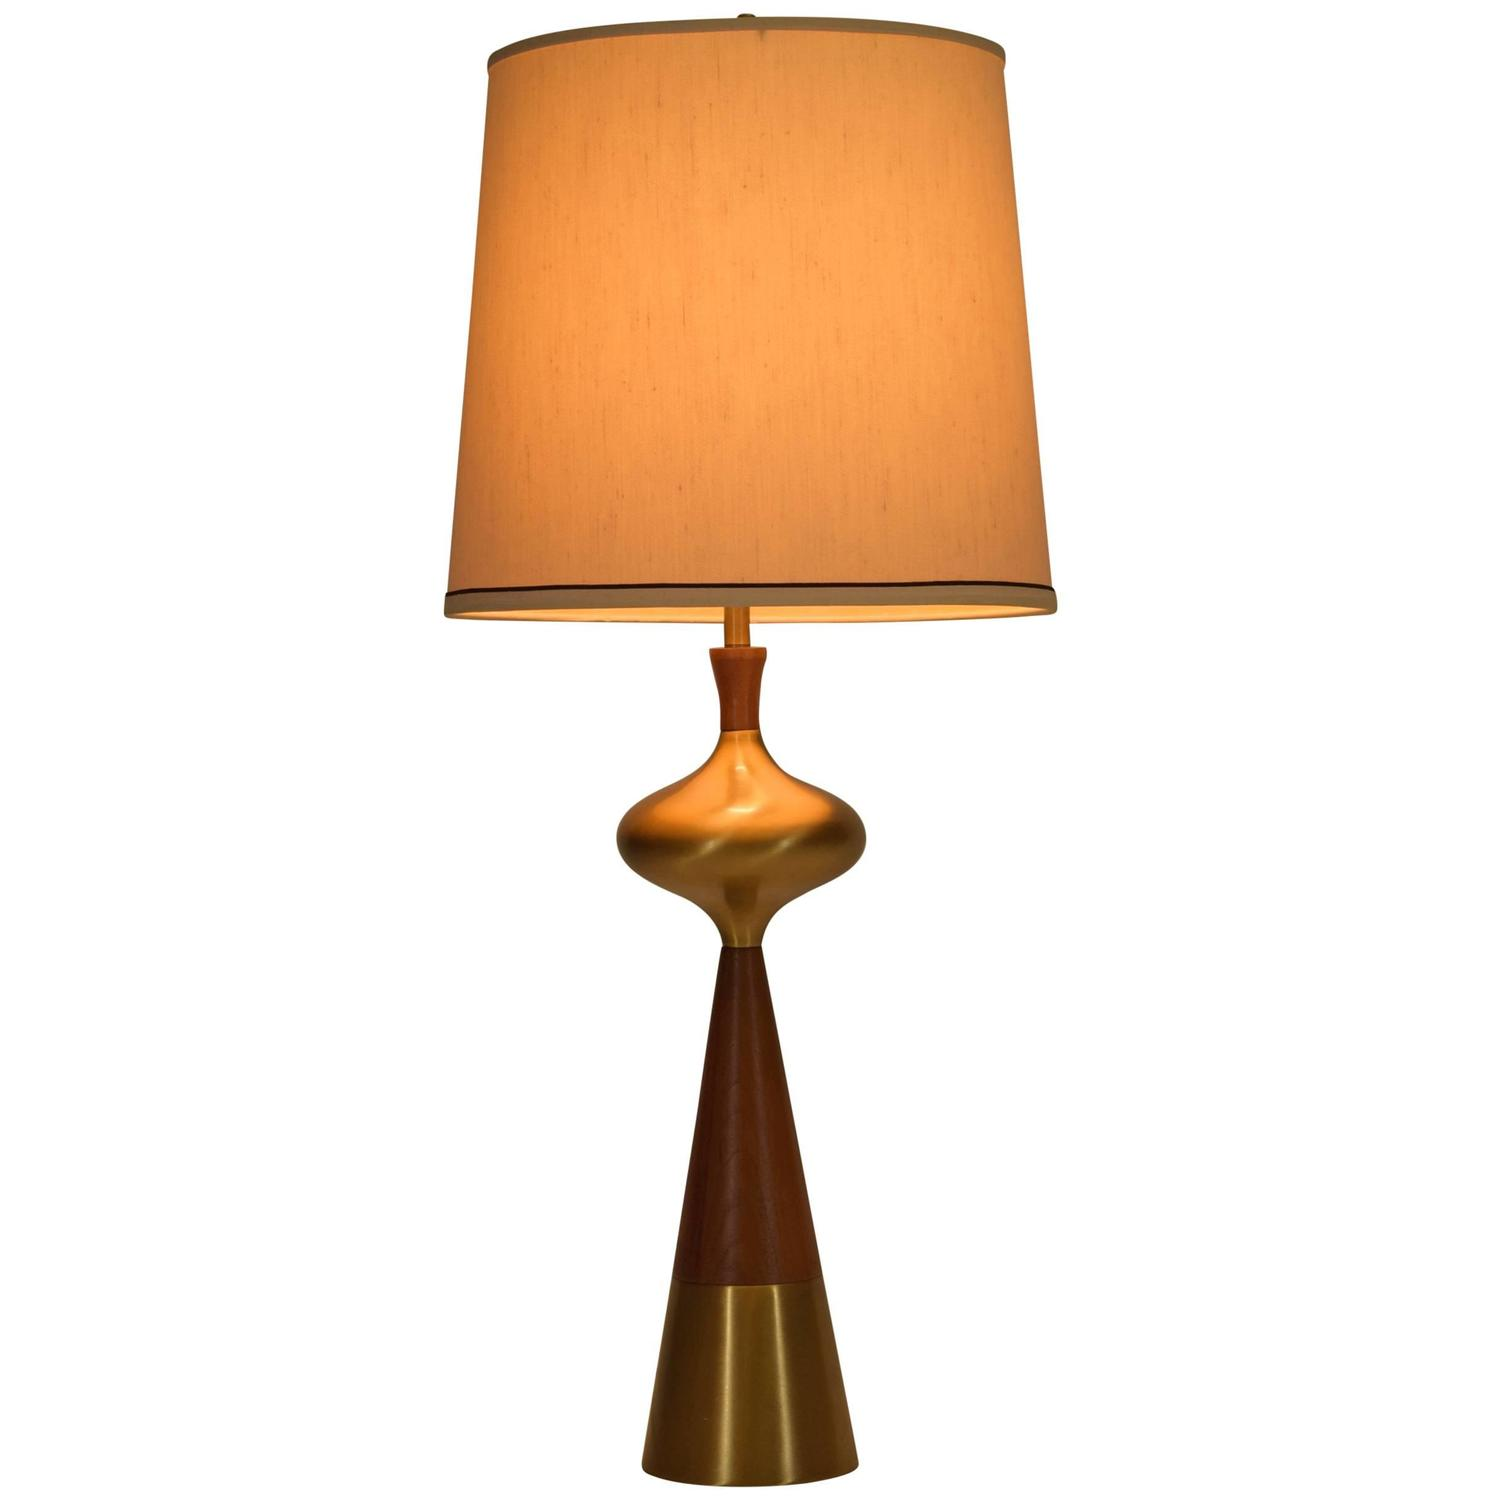 Westwood Lighting: Sculptural Table Lamp By Westwood Designed By Tony Paul